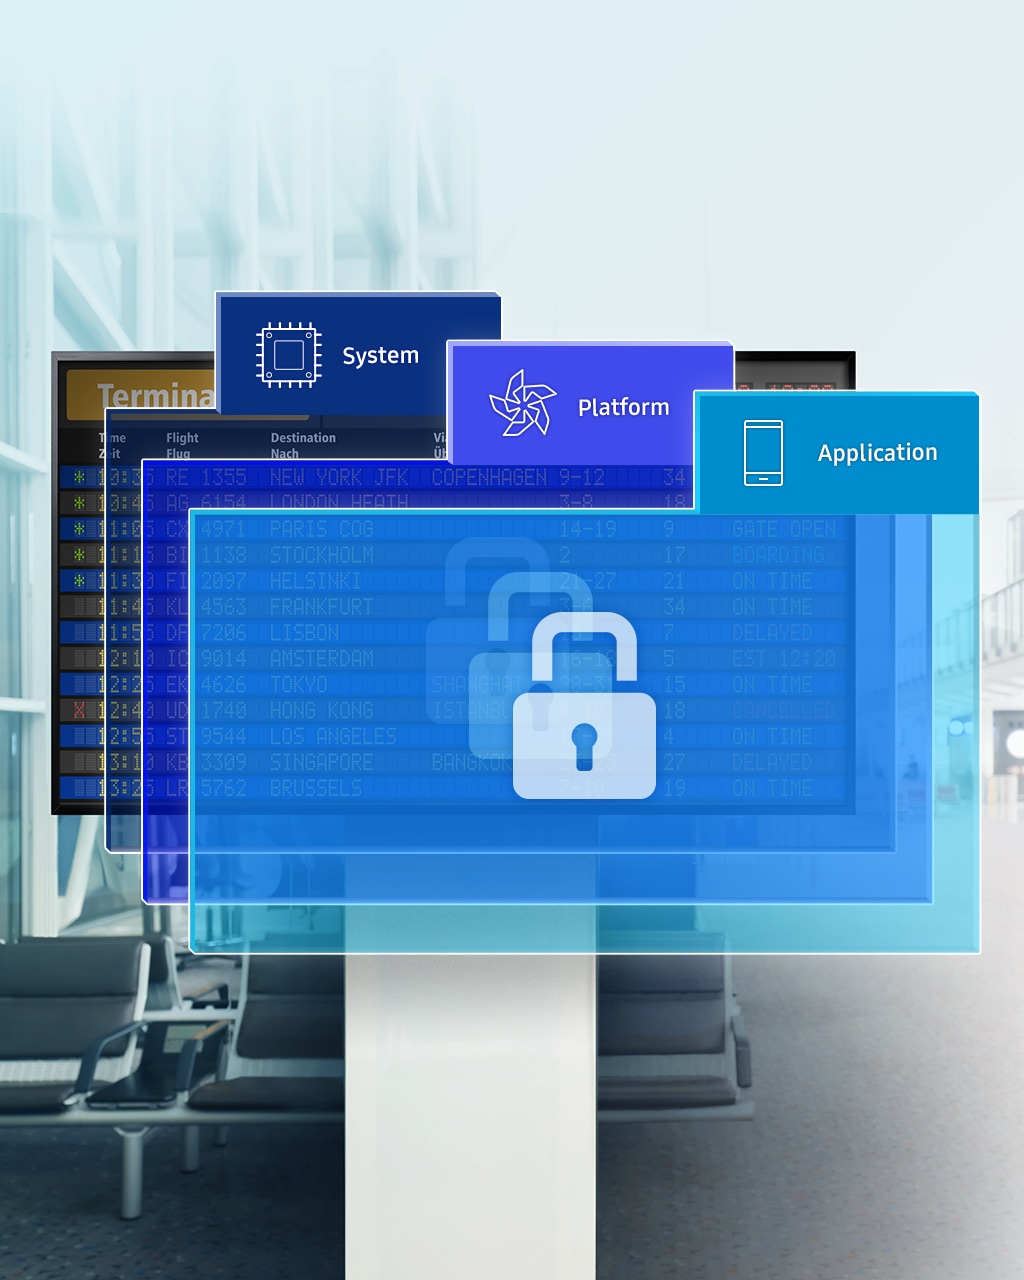 Protect Business and Customer Data through Extensive Security